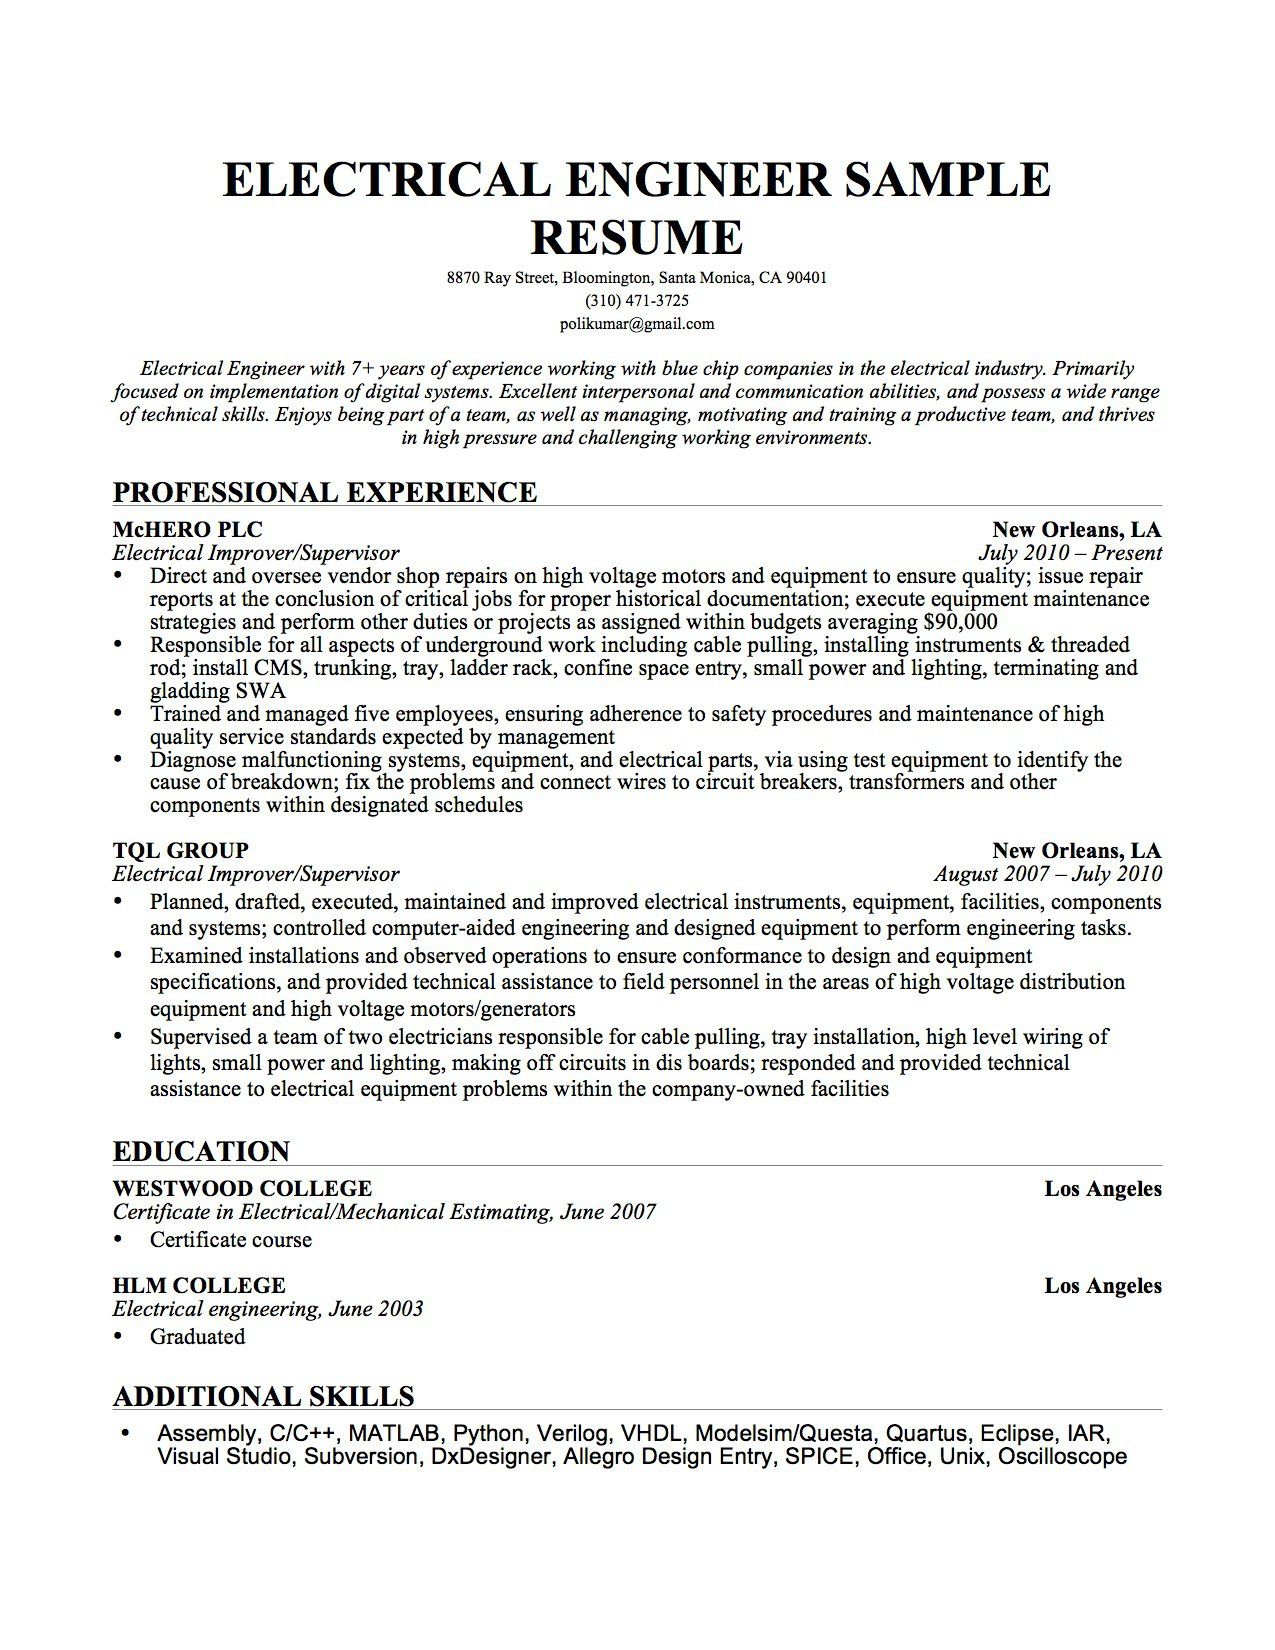 Sample Resume Summary Engineer Sample Resume Equipment Fixed Biomedical Technician Cover